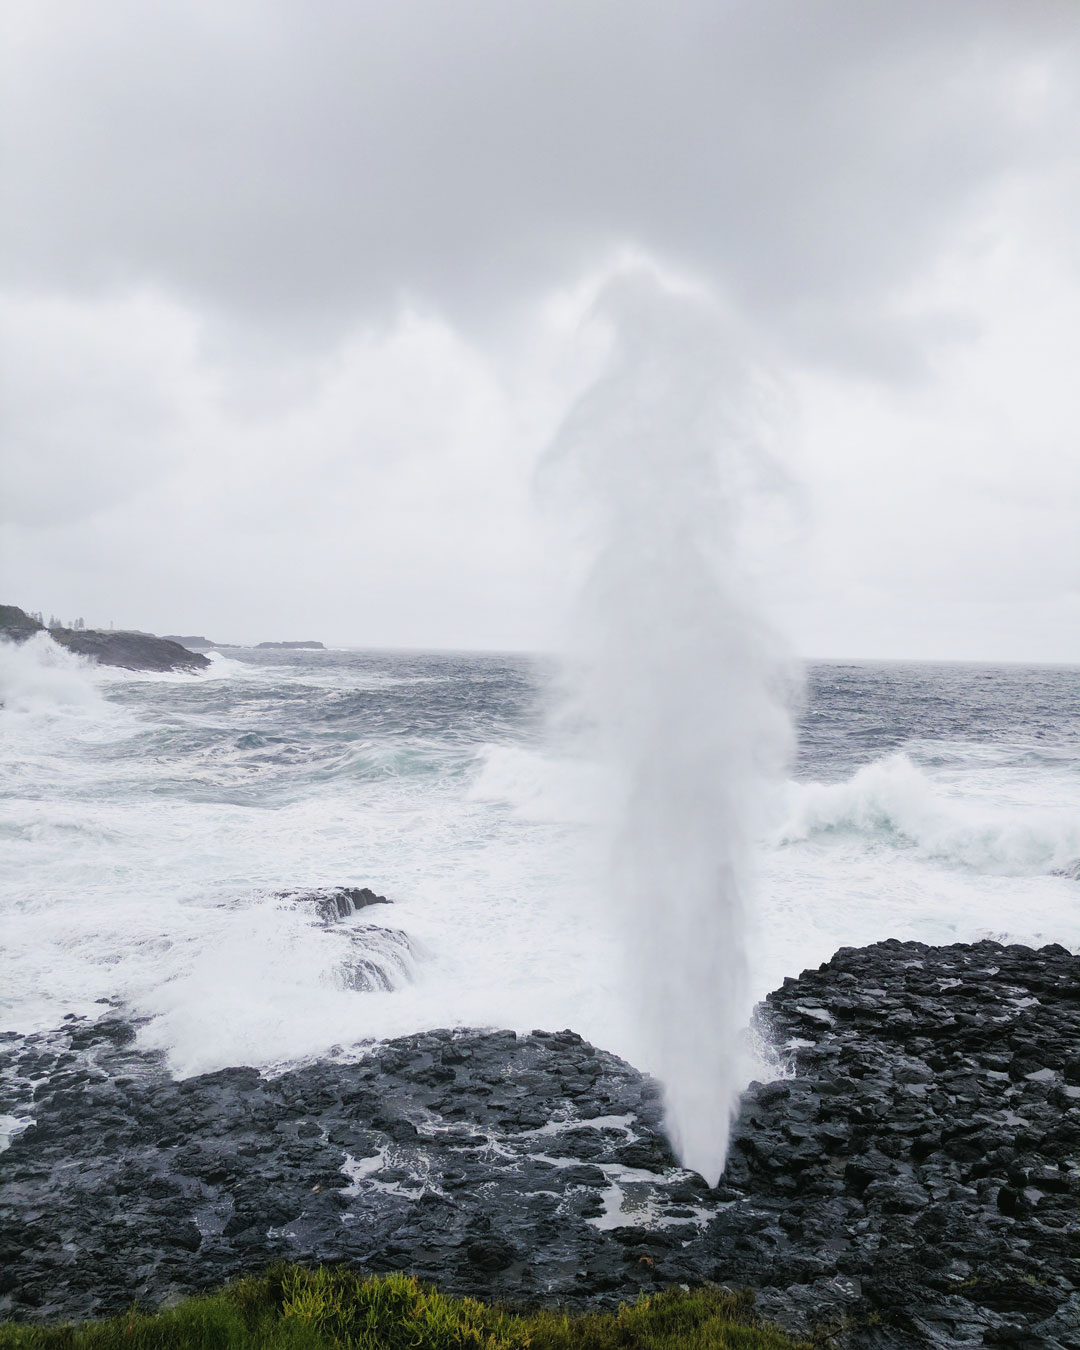 The Little Blowhole in Kiama